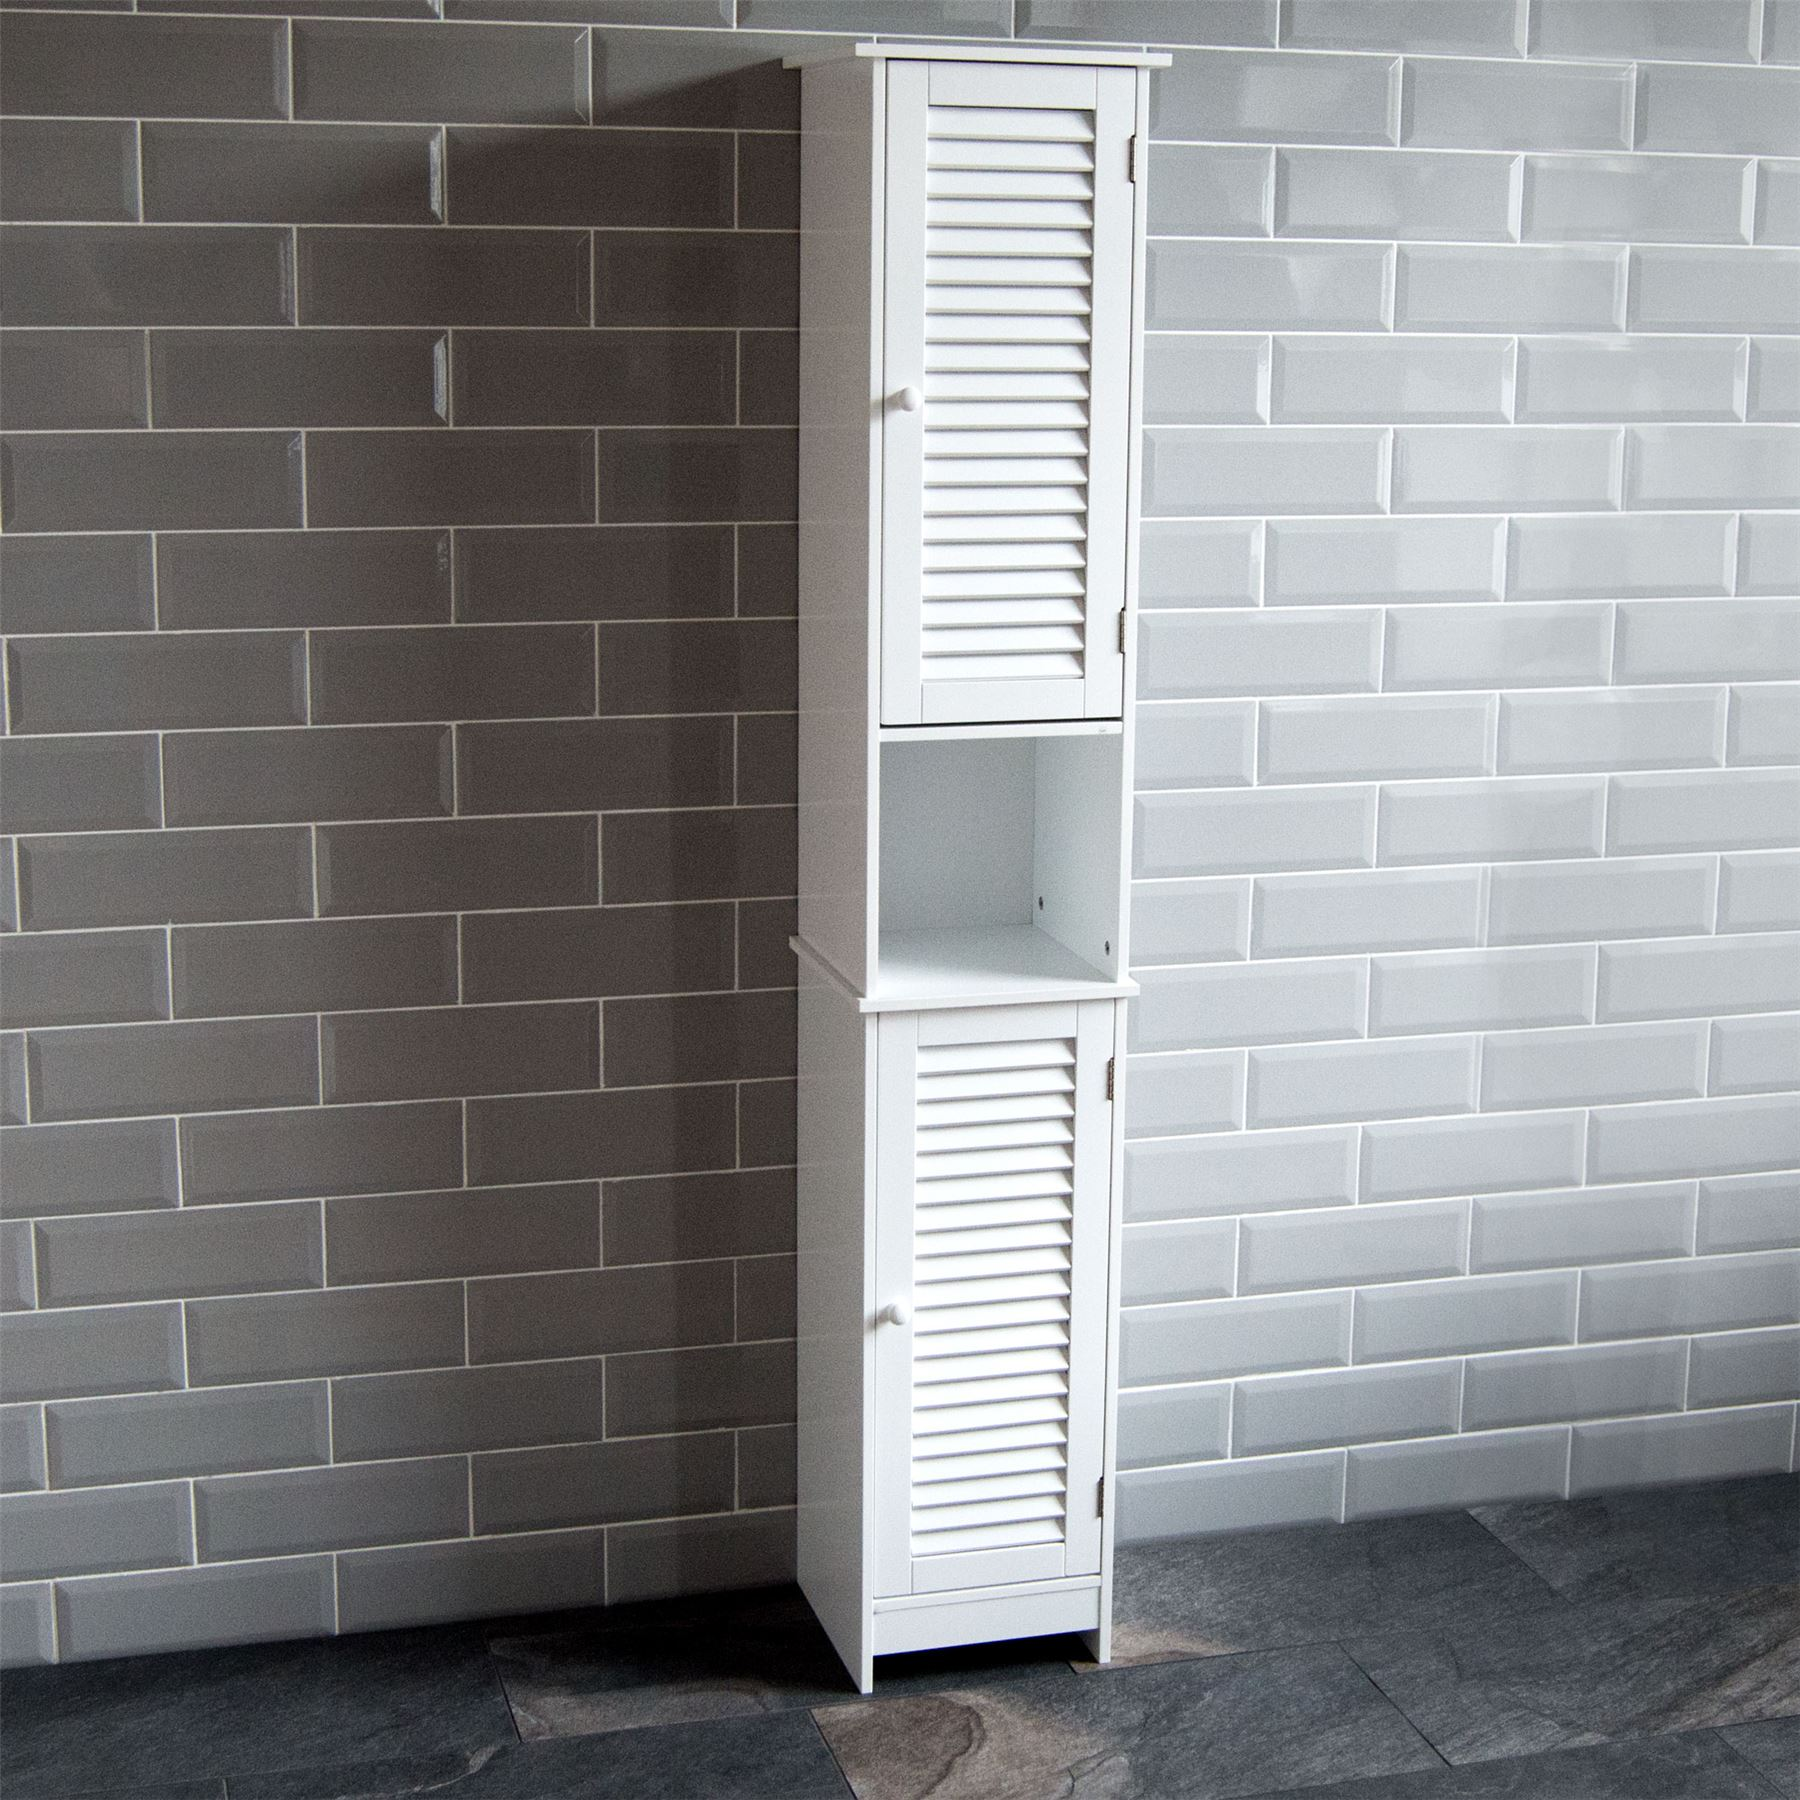 Liano Bathroom Cabinet Single Double Shutter Door Wall